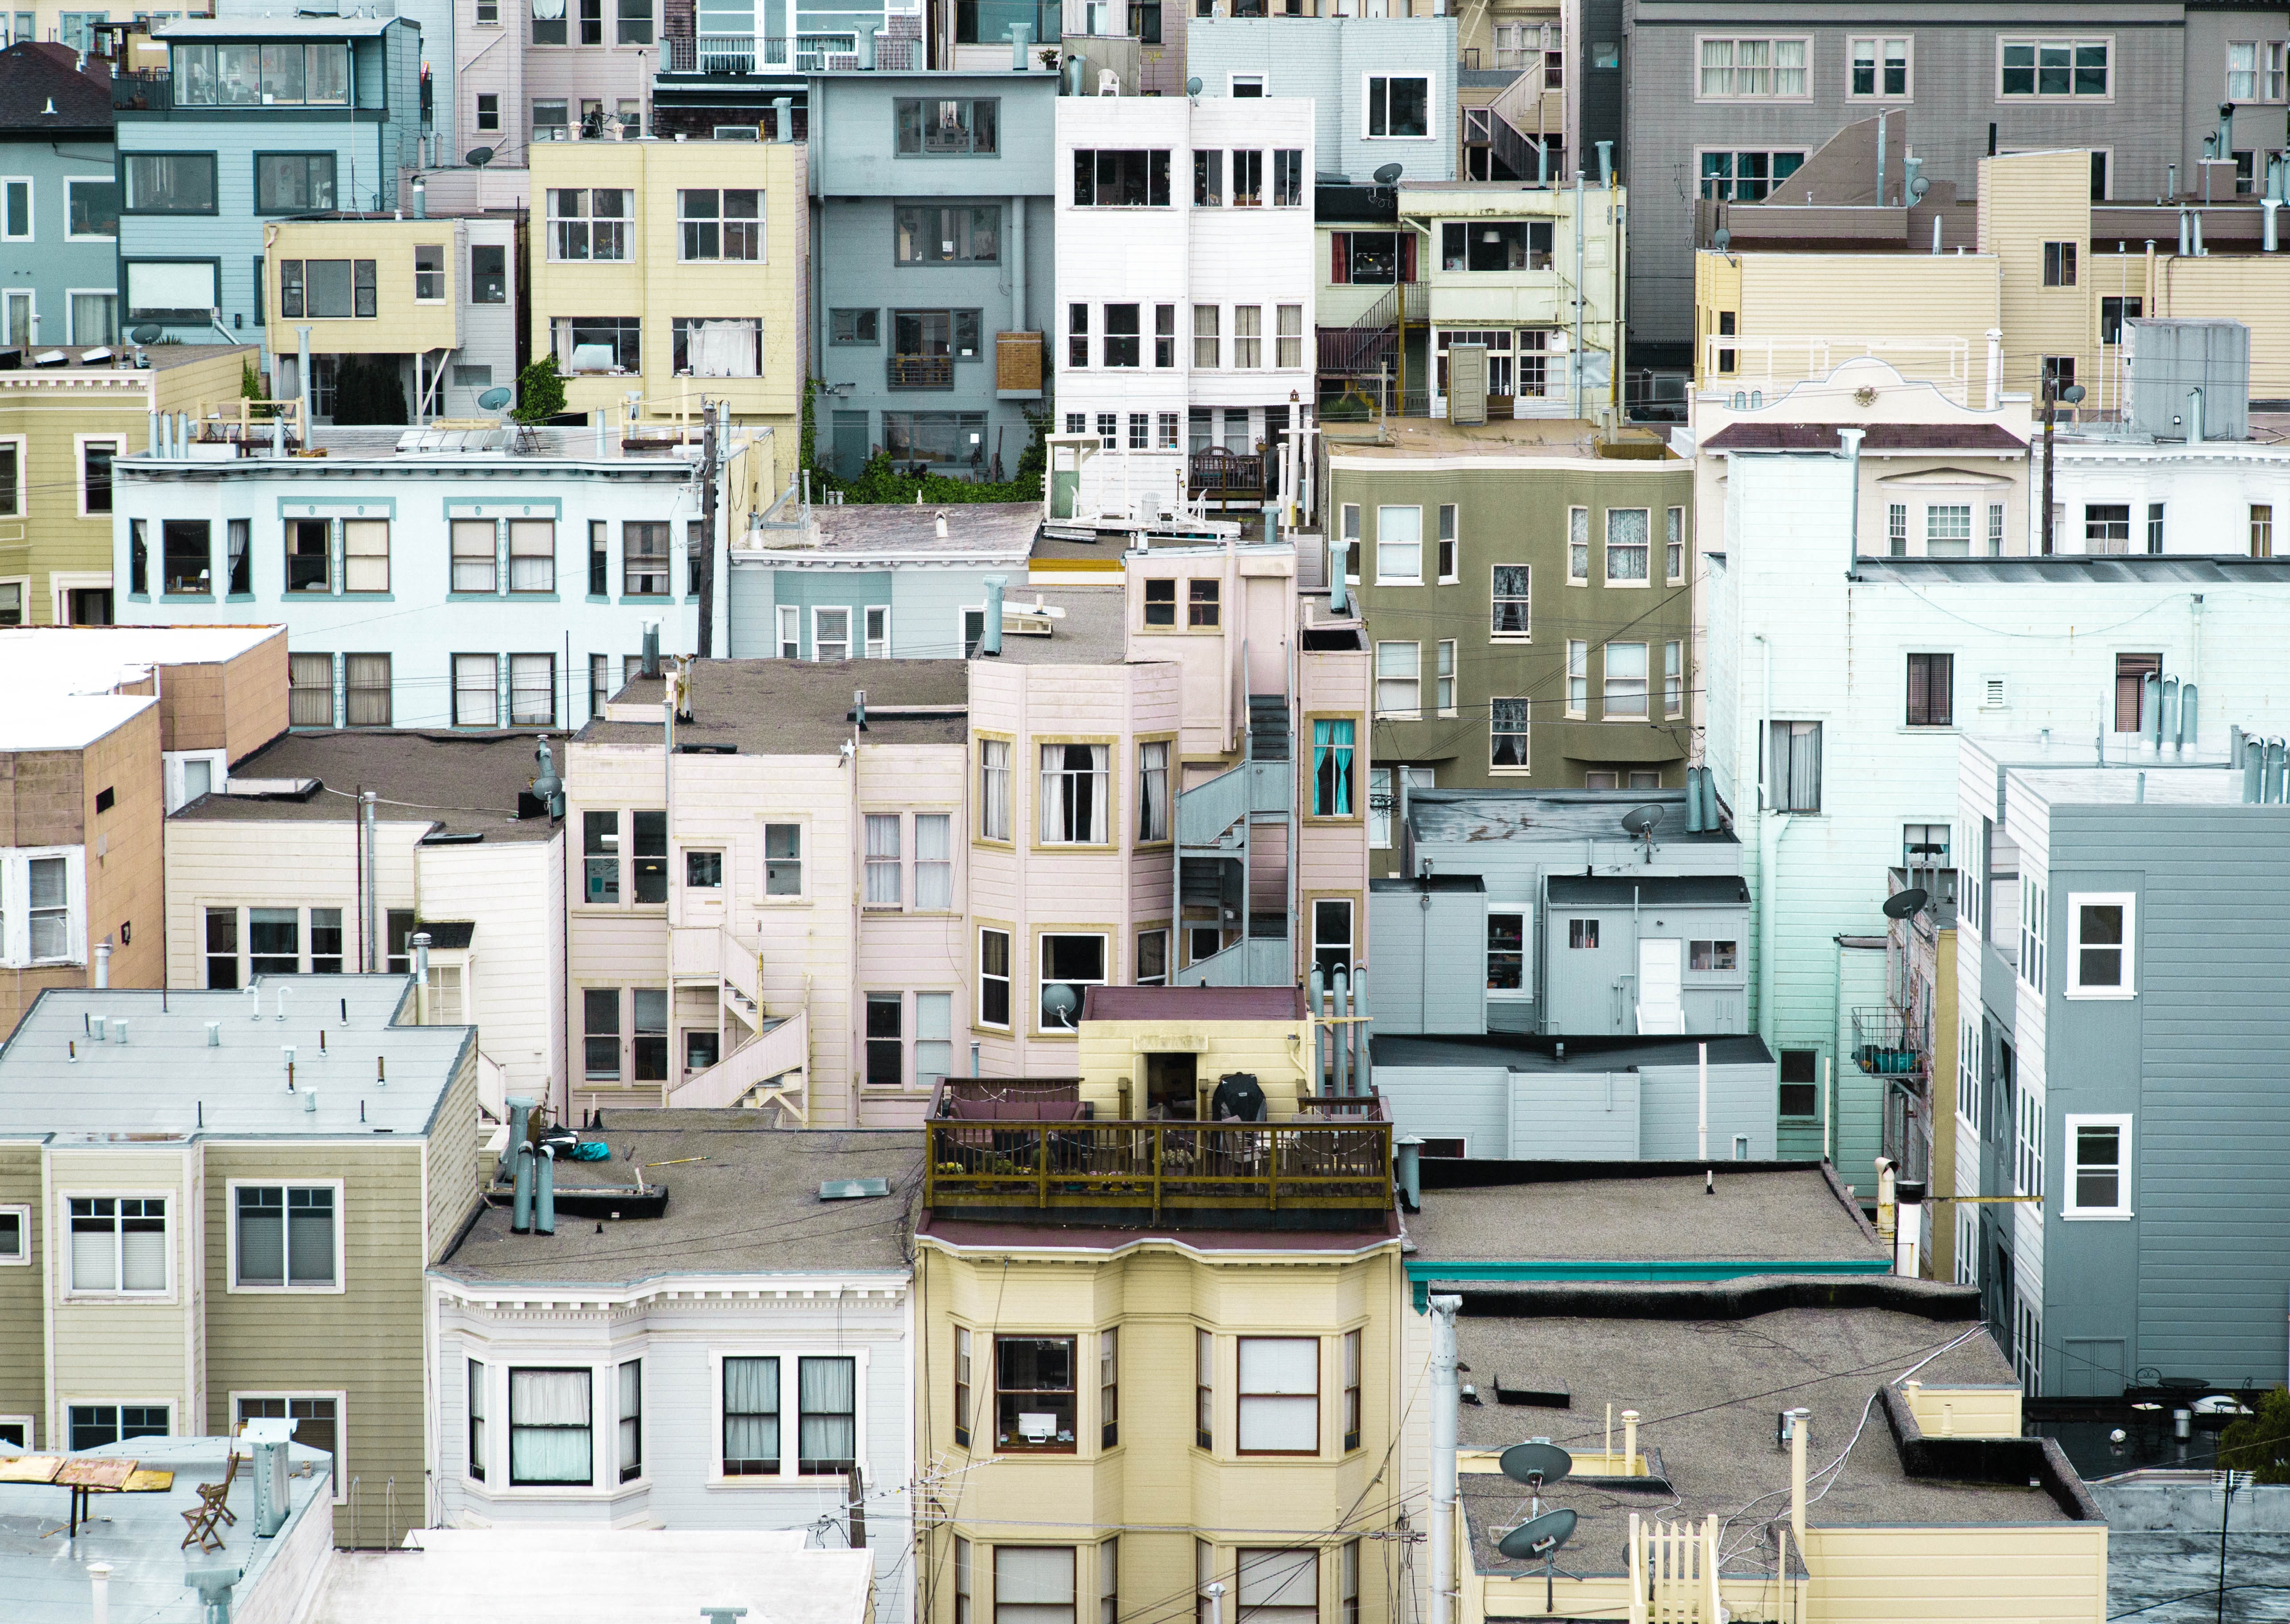 aerial photograph of colorful buildings